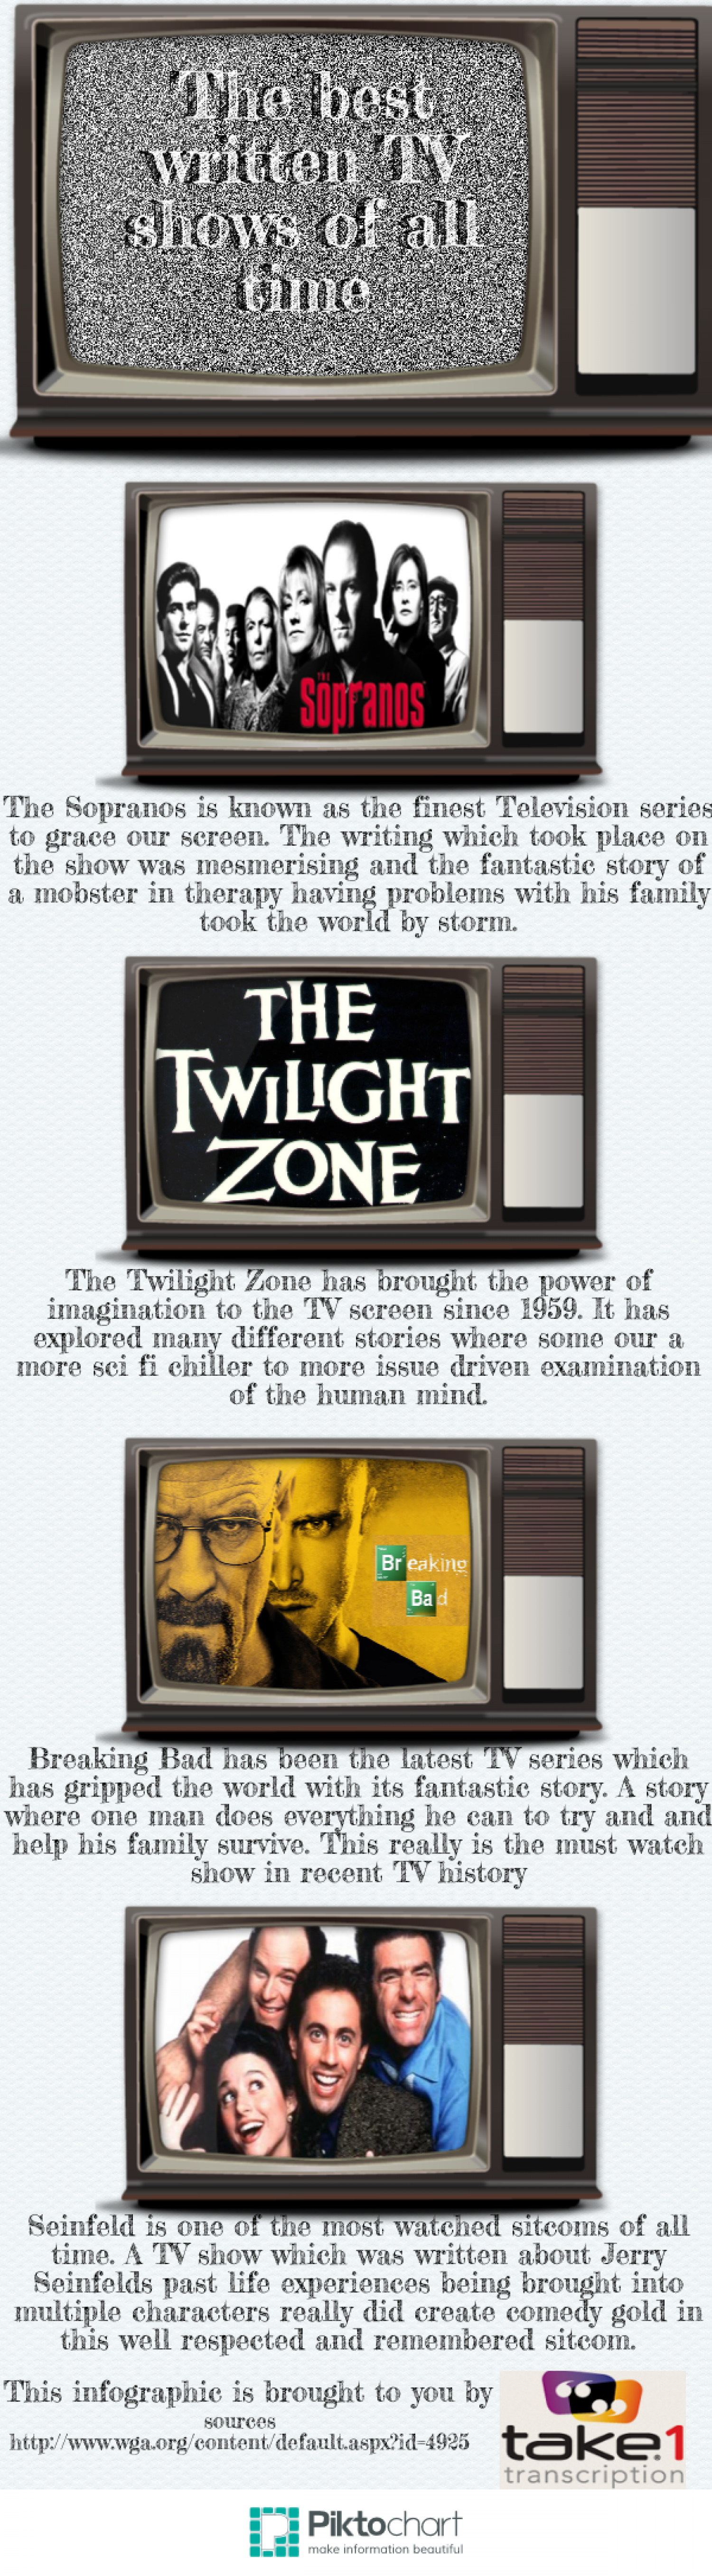 The best written TV shows of all time. Infographic